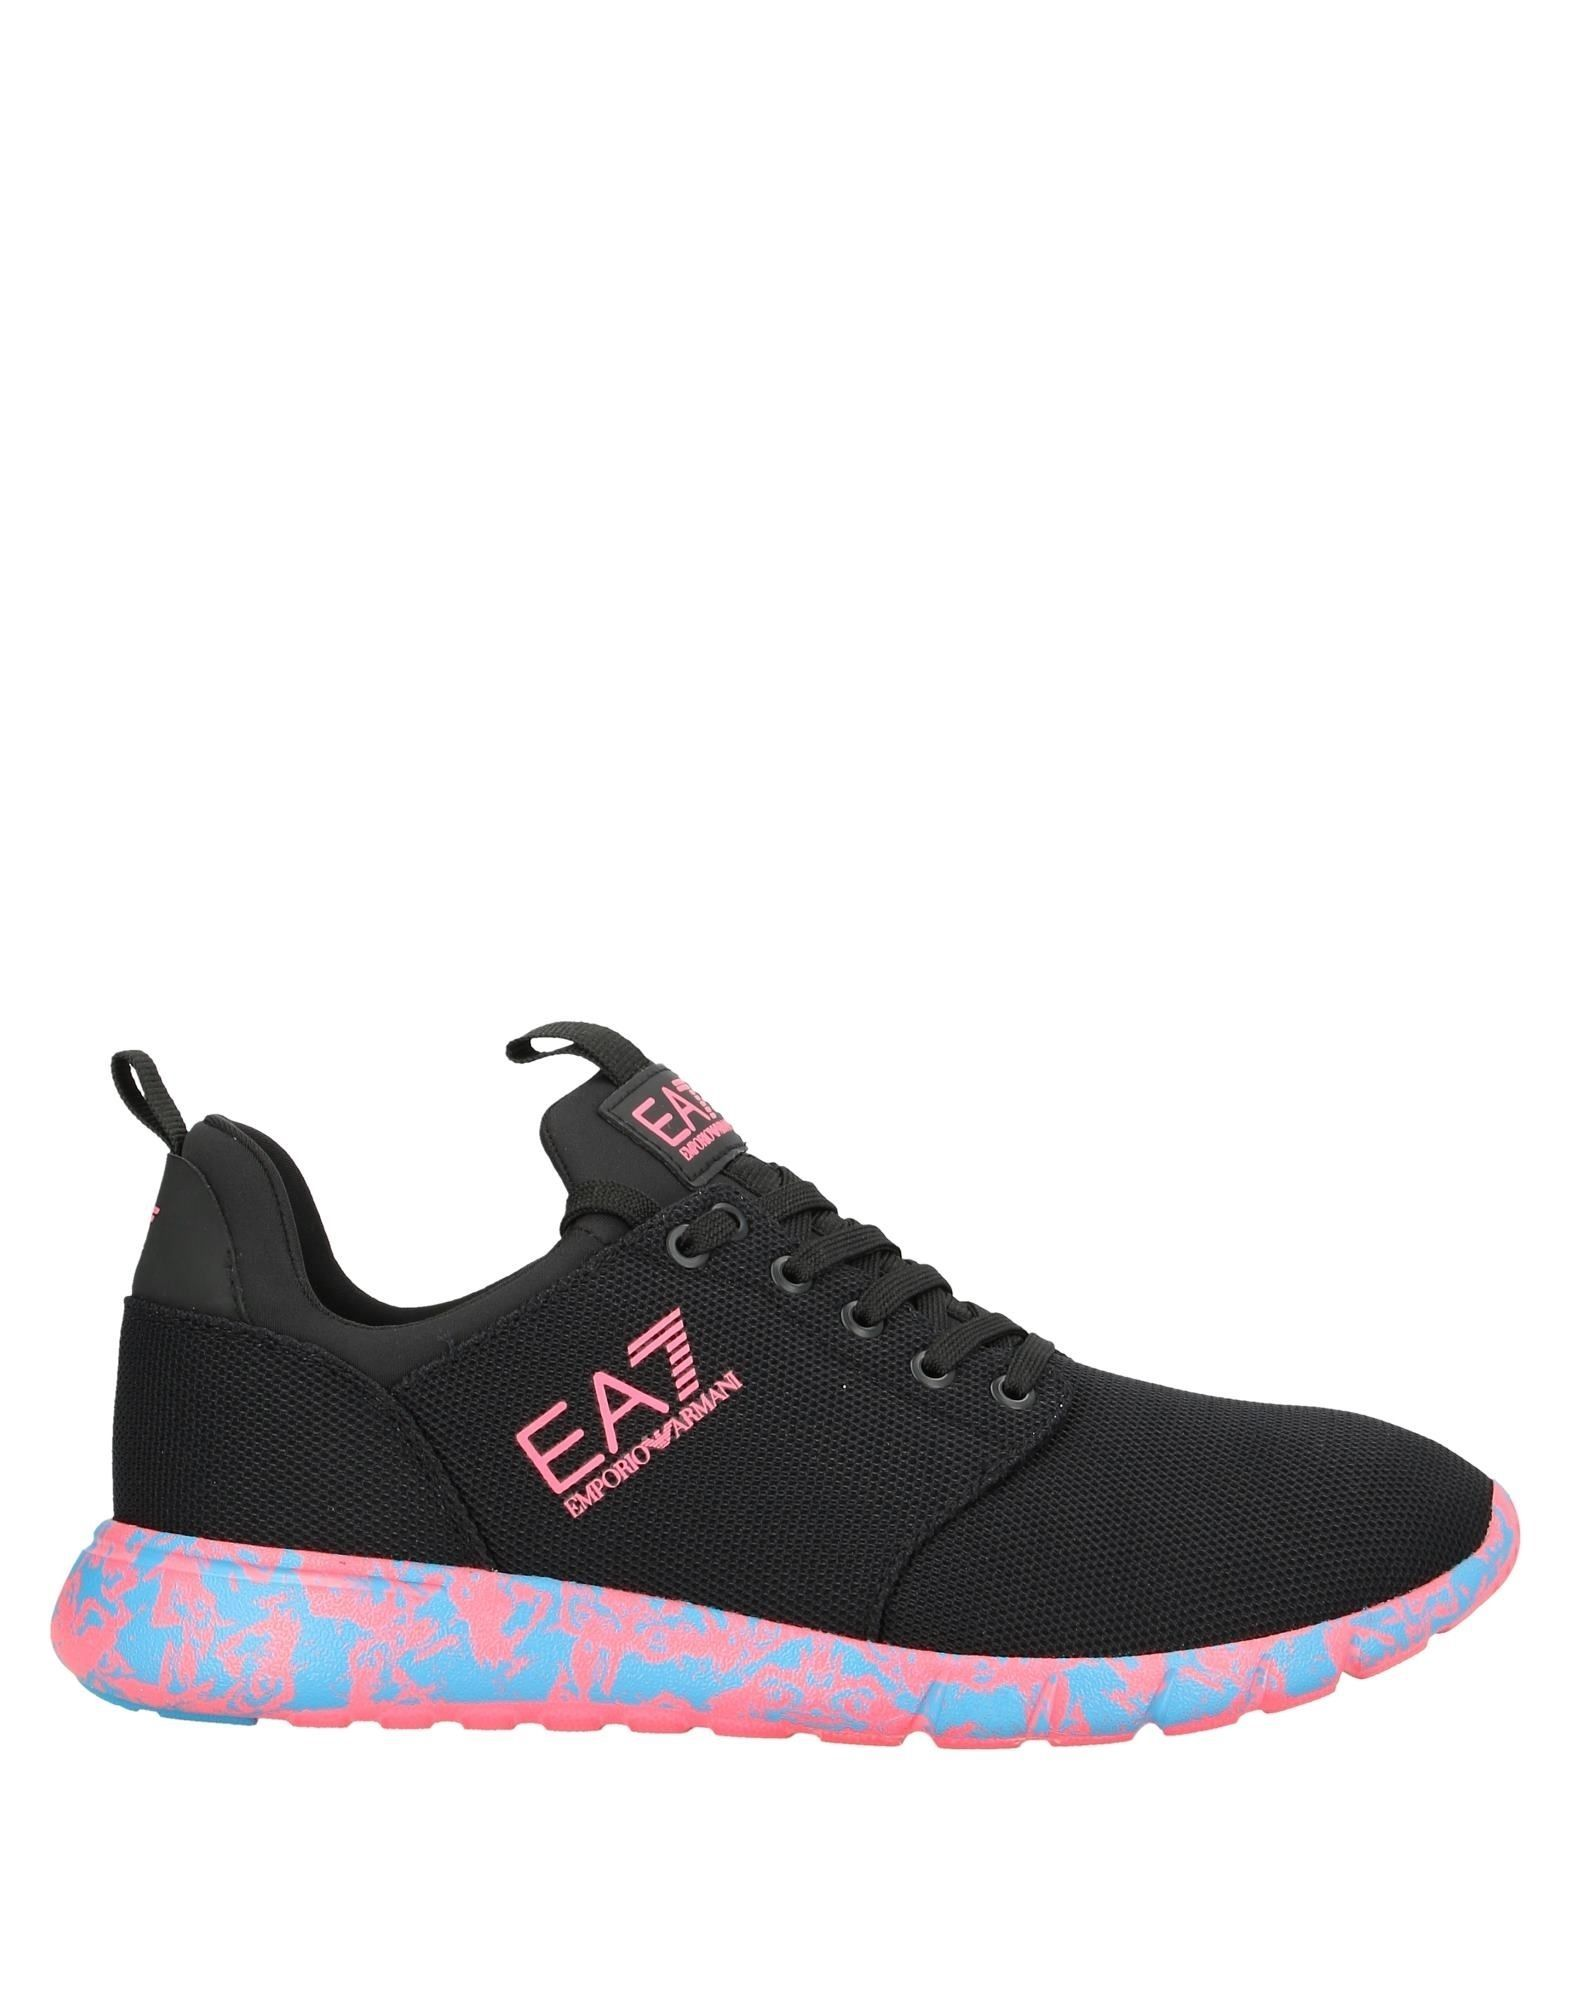 EA7 Black Sneakers